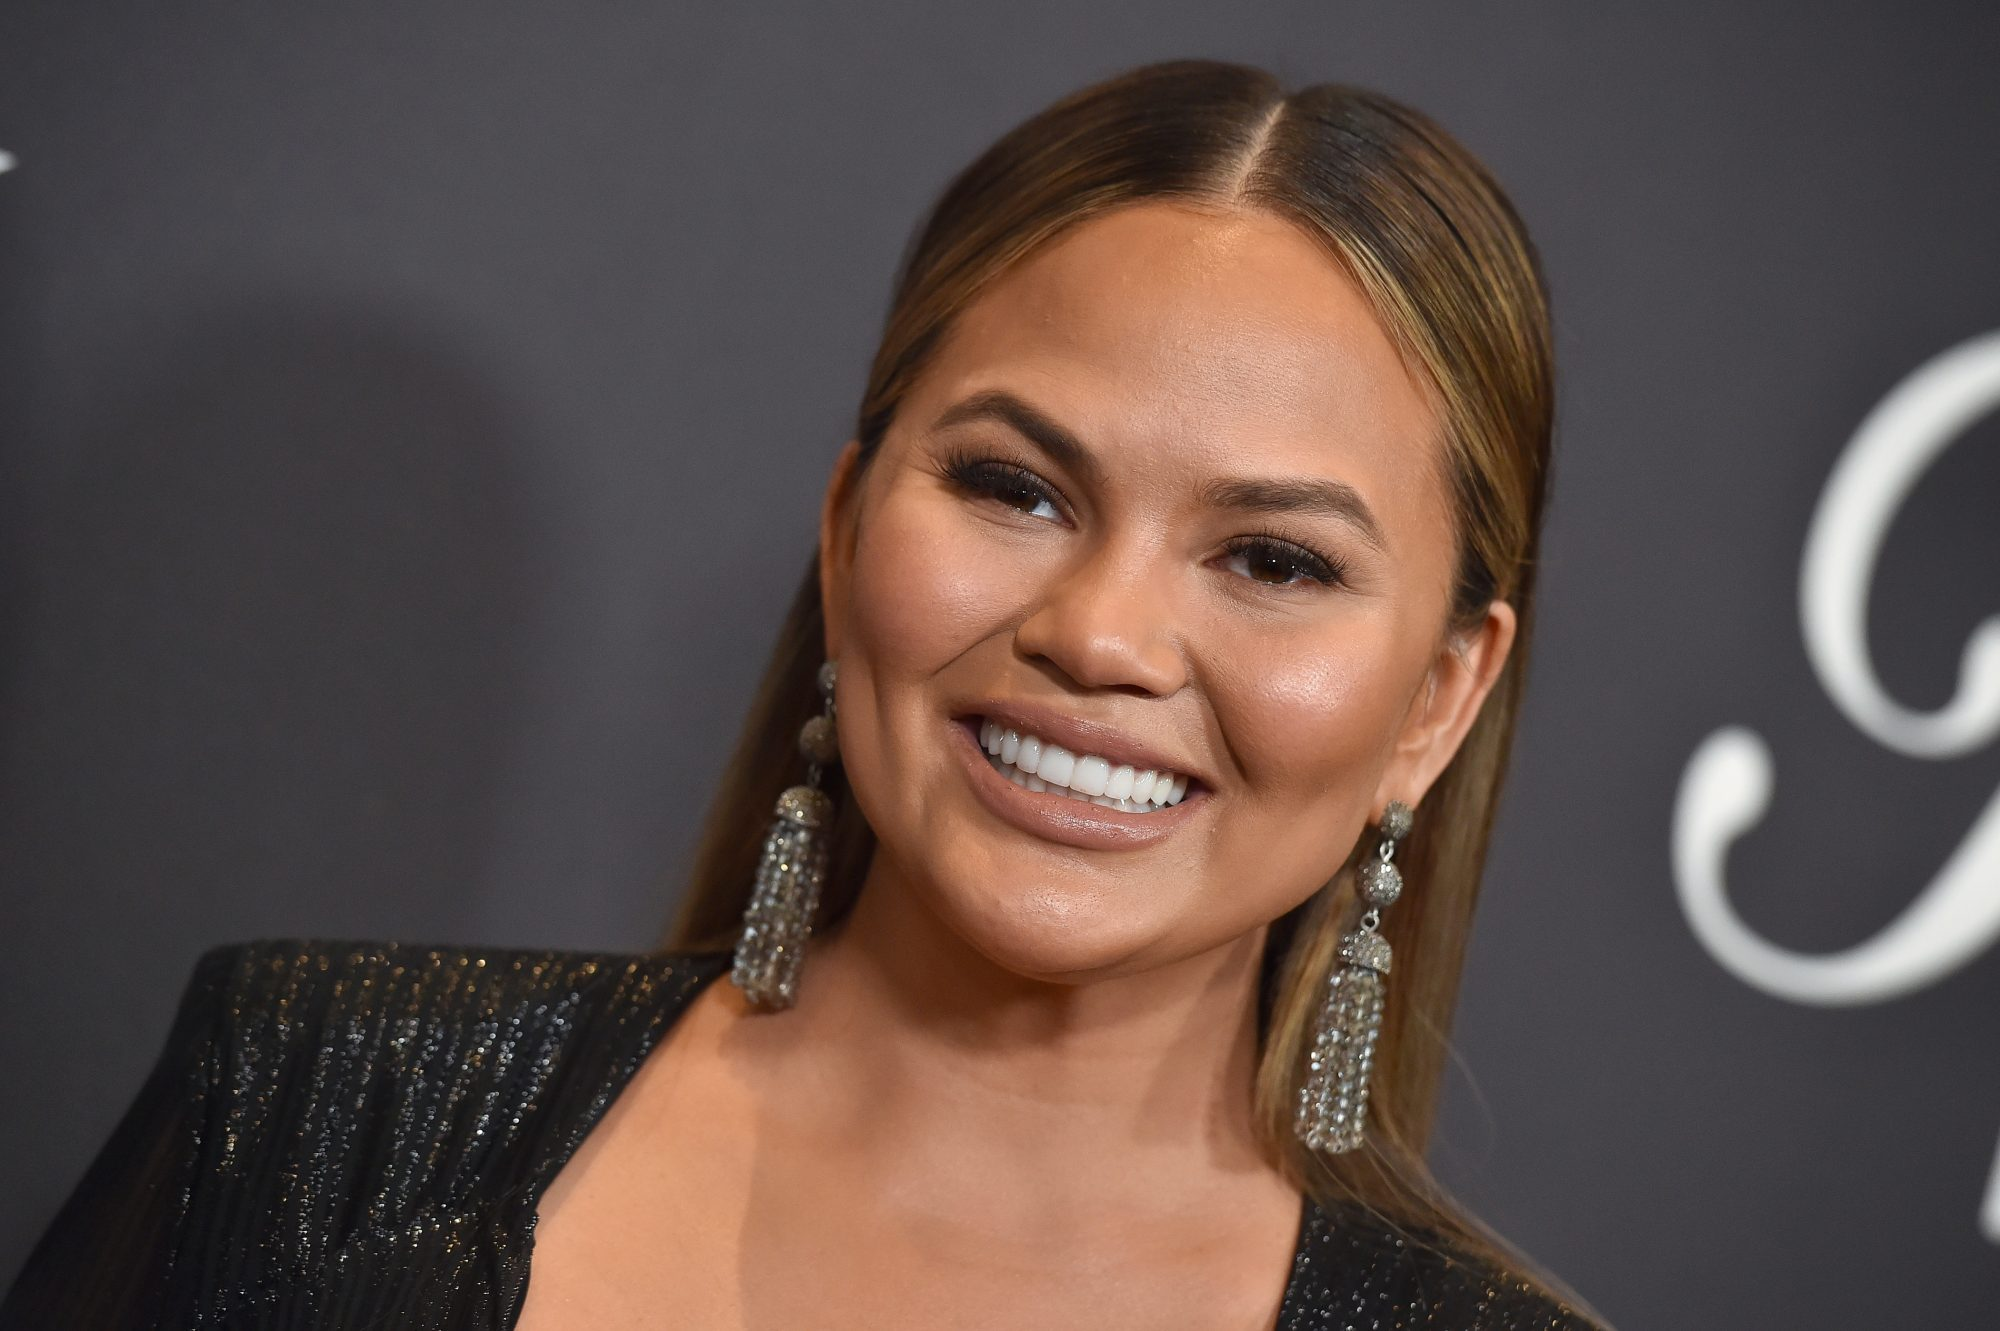 Chrissy Teigen Admits She Thinks Her Arms Looked too Thin in These Photos